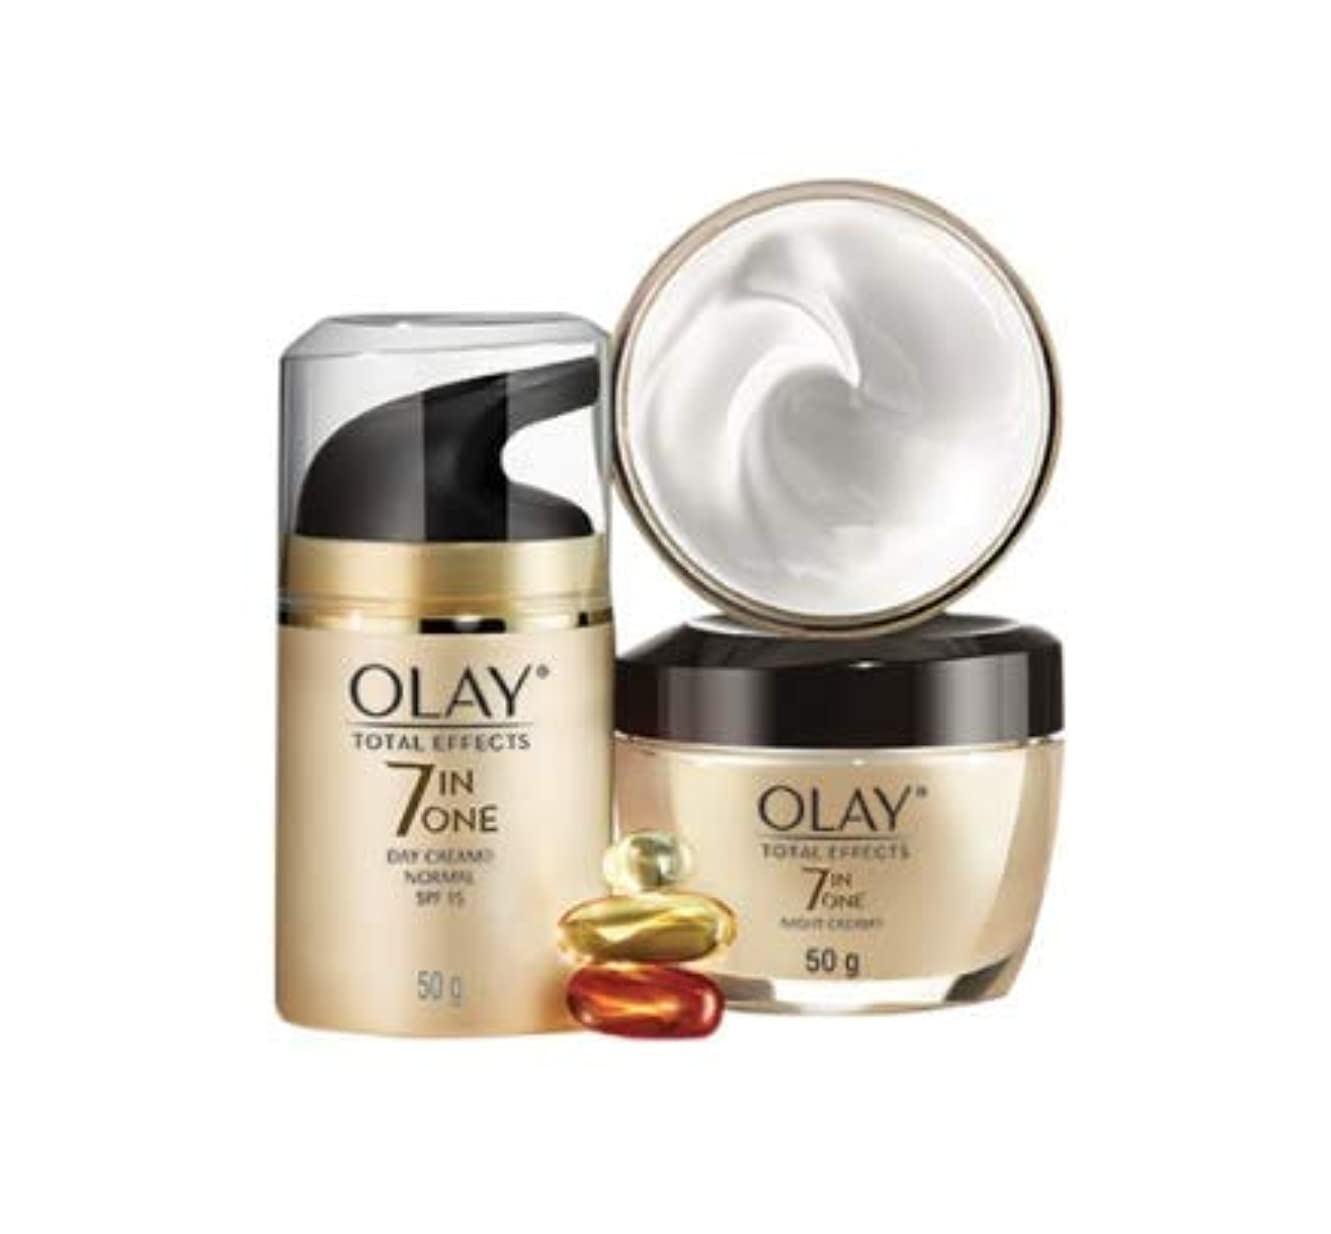 認める従う渇きOlay Total Effects Normal Cream SPF 15 50g Free Olay Total Effects Night Cream 50g Olay p&g